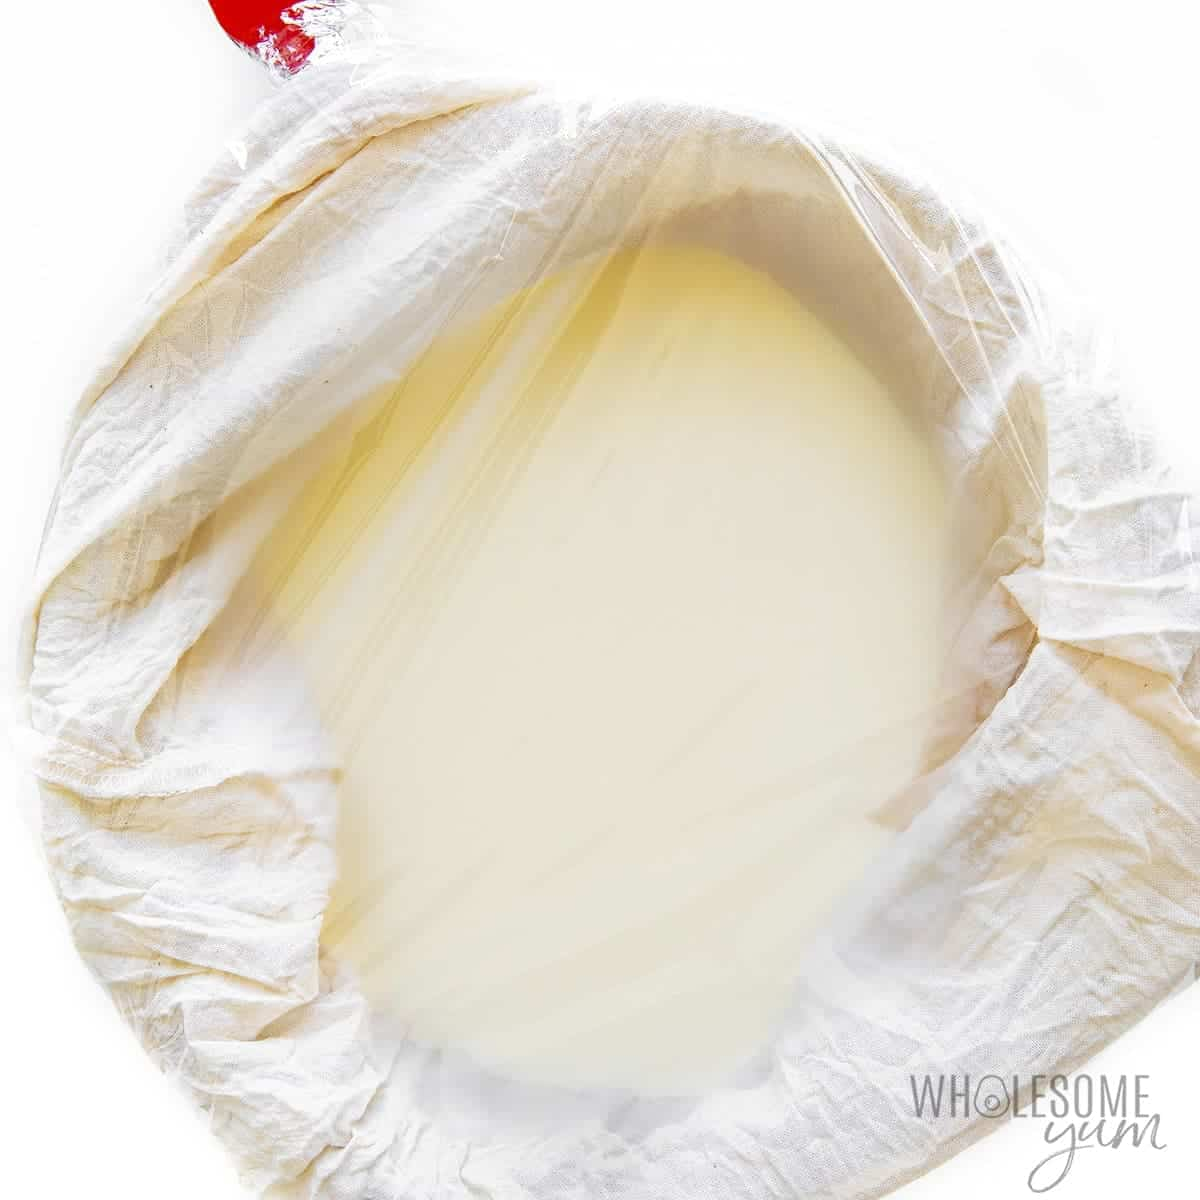 Mascarpone base over cheesecloth, covered in plastic wrap